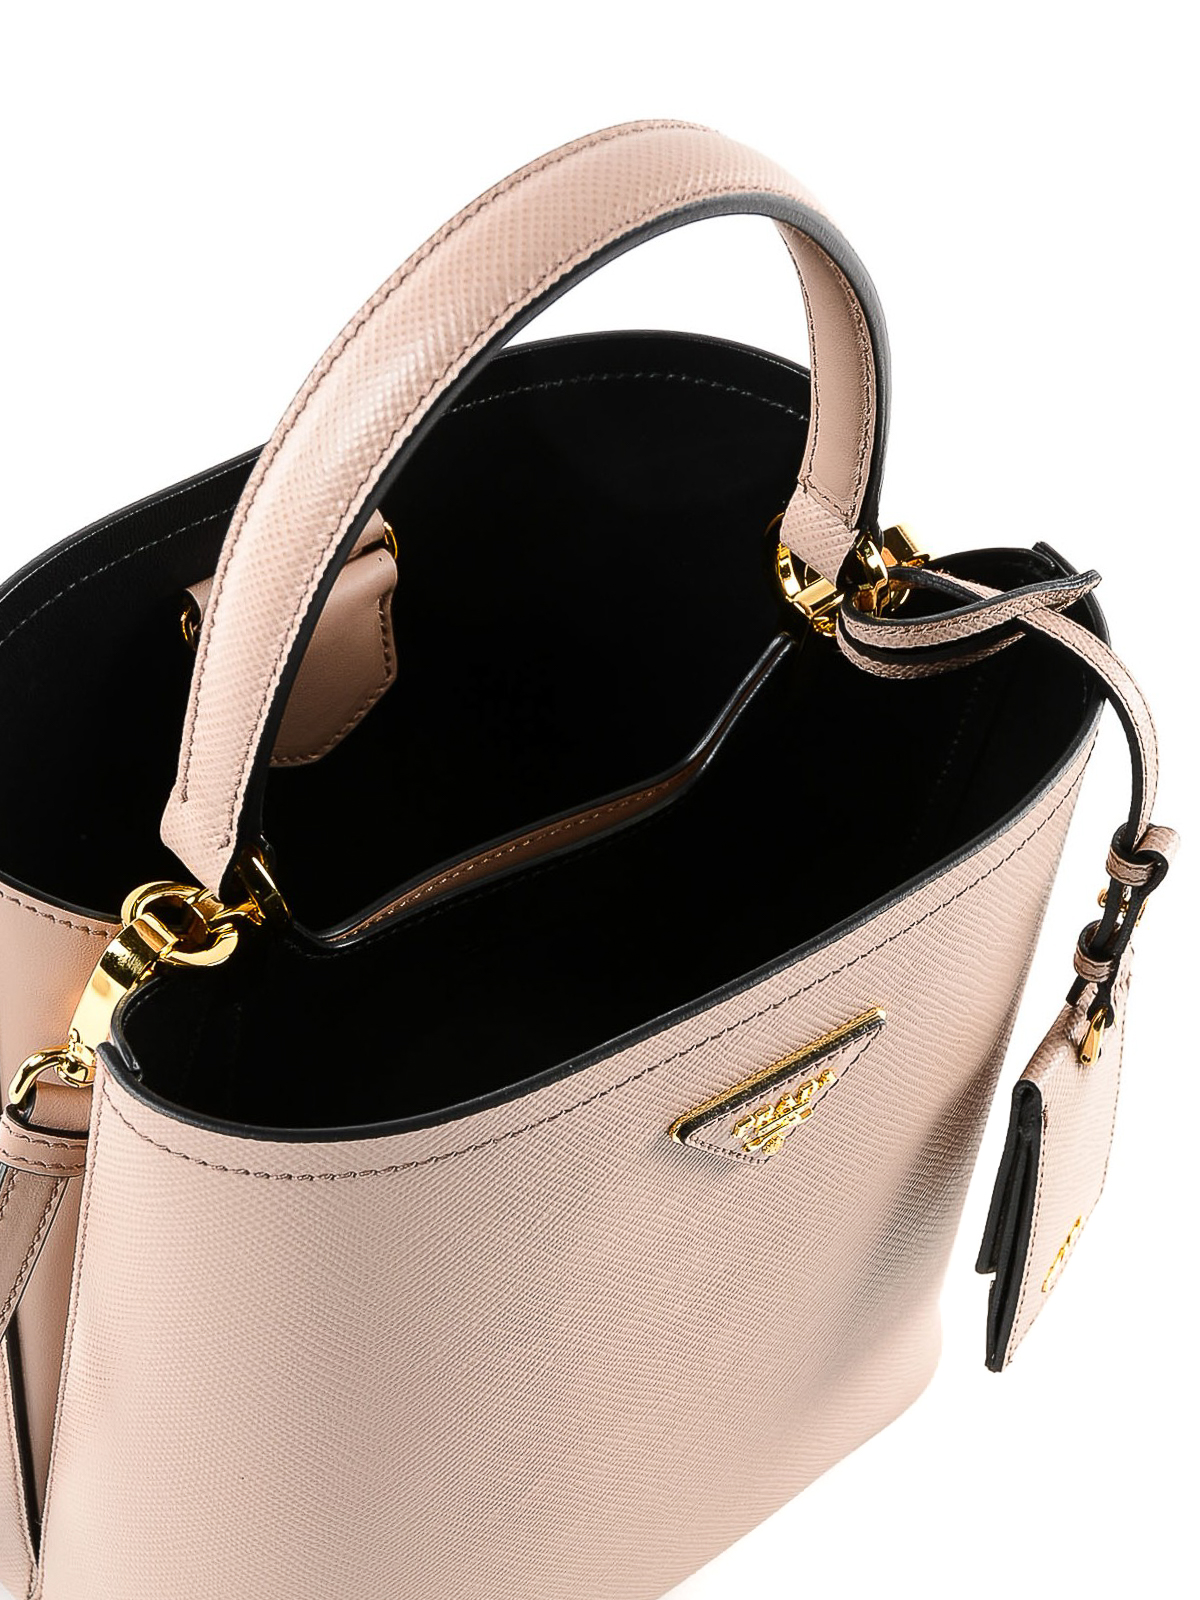 01a7f8854a2af Prada - Saffiano leather double bucket bag - Bucket bags ...